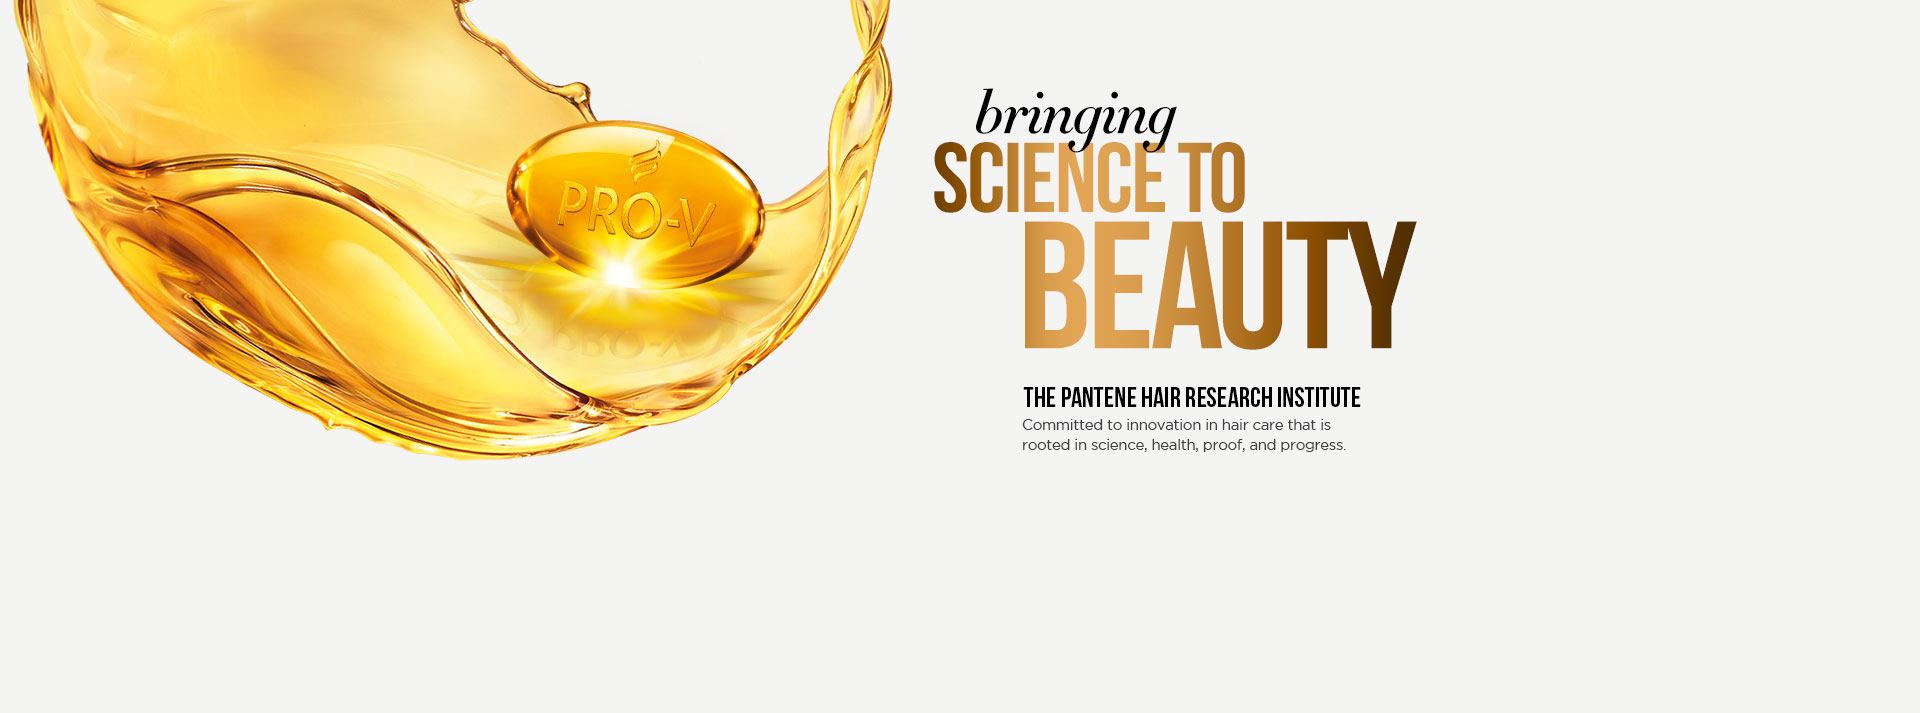 bringing science to beauty